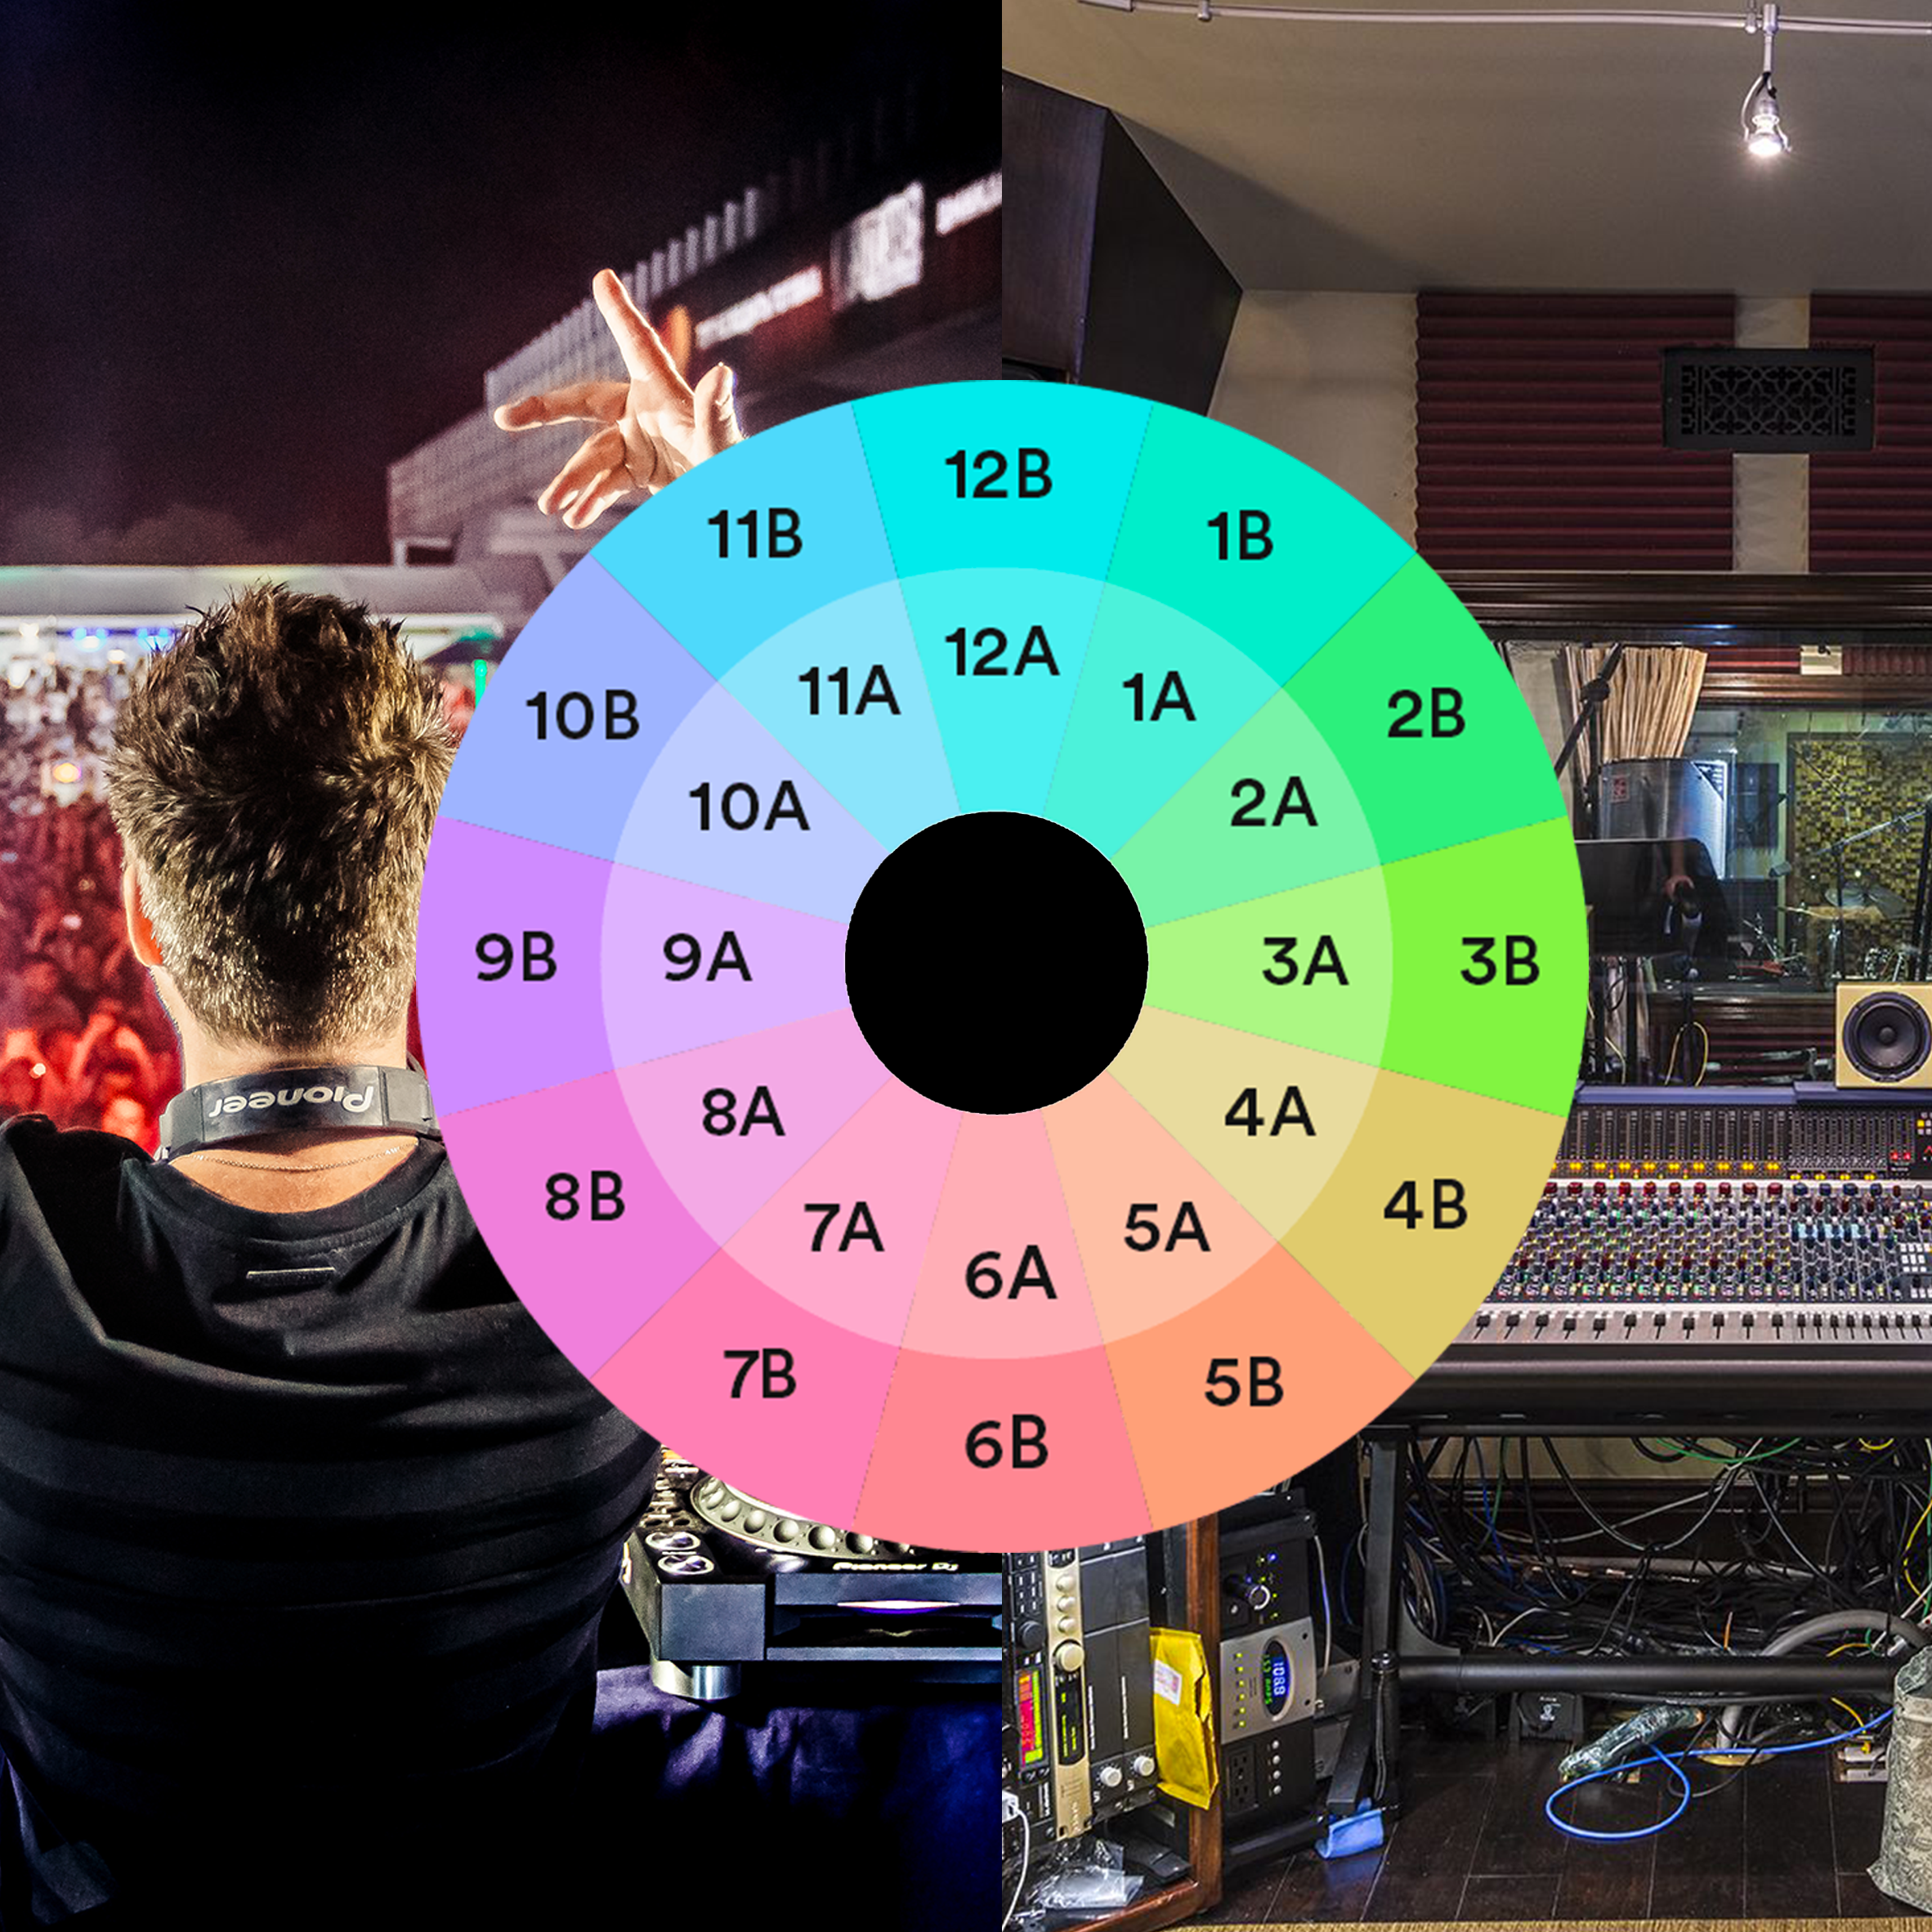 The secret to make any kind of Electronic Music if you have no music skills